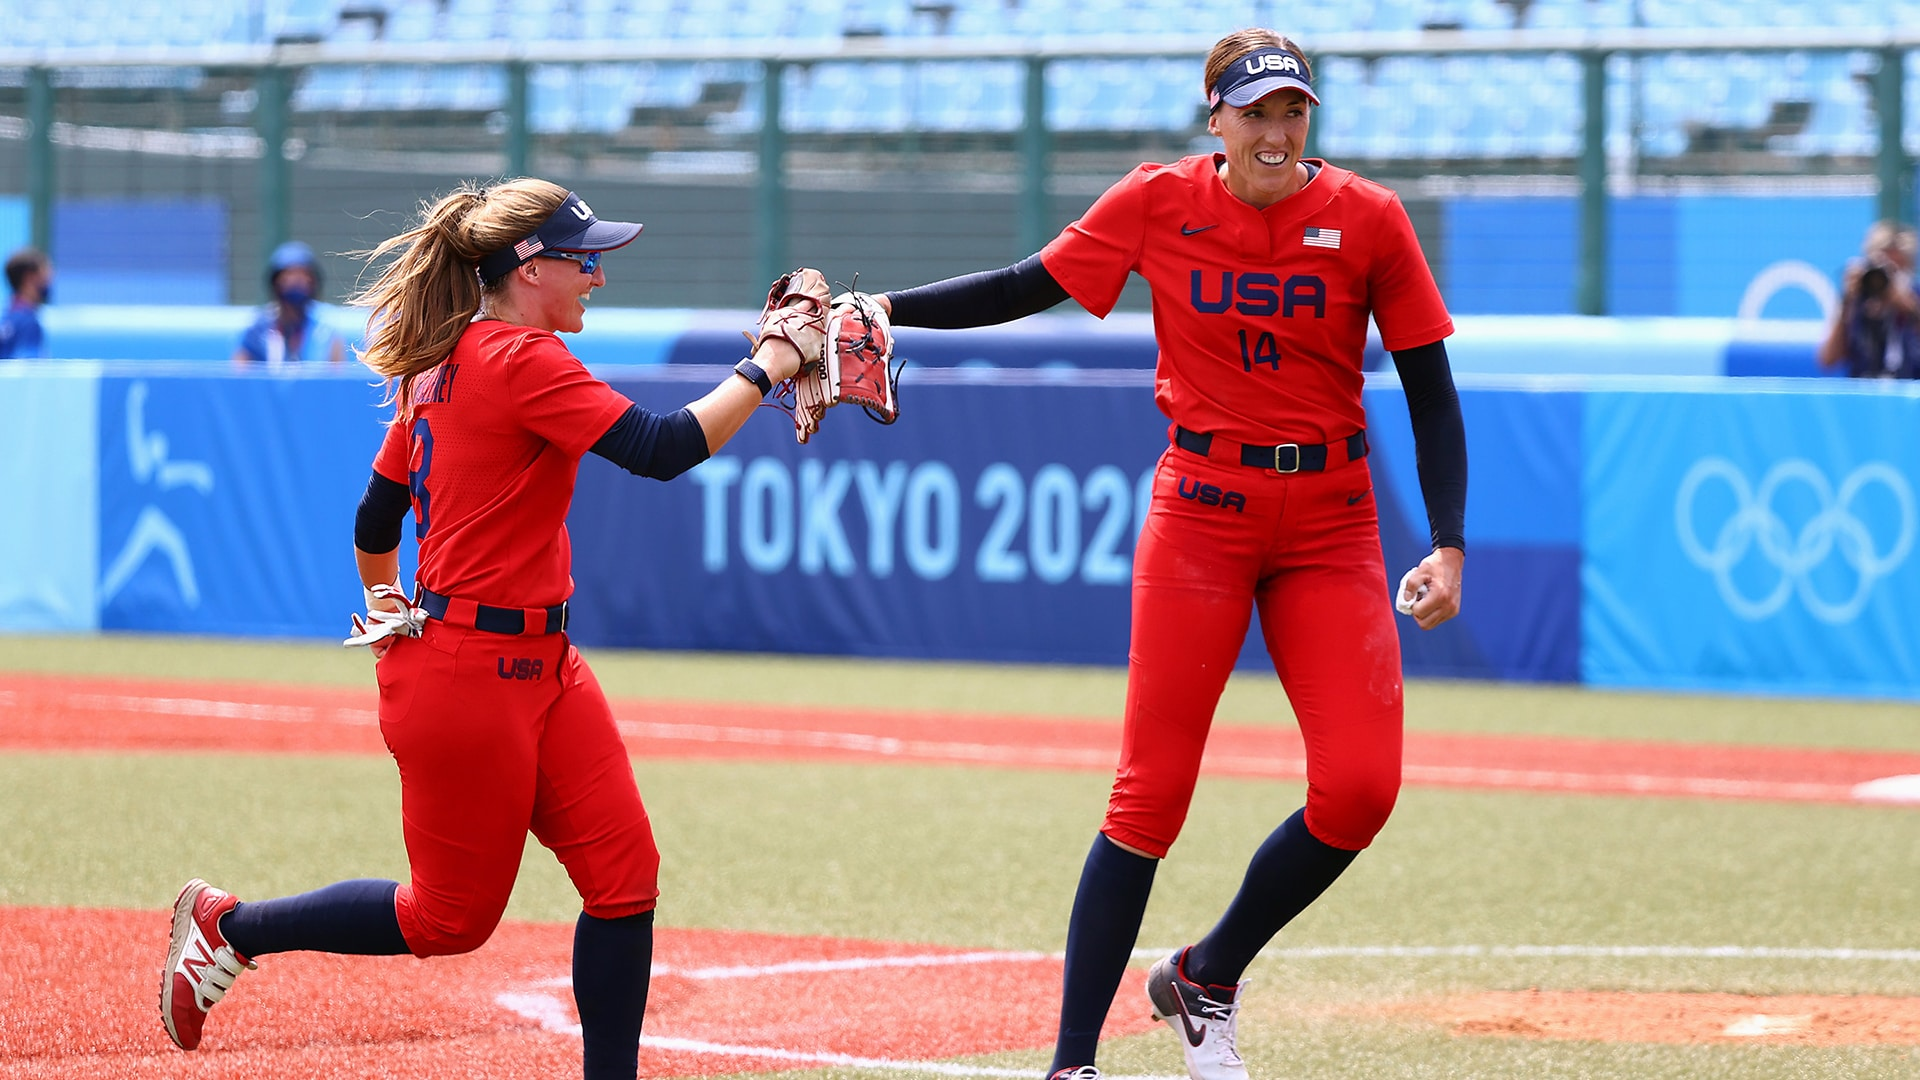 Image for Monica Abbott one-hits Canada as U.S. wins 2nd prelim game